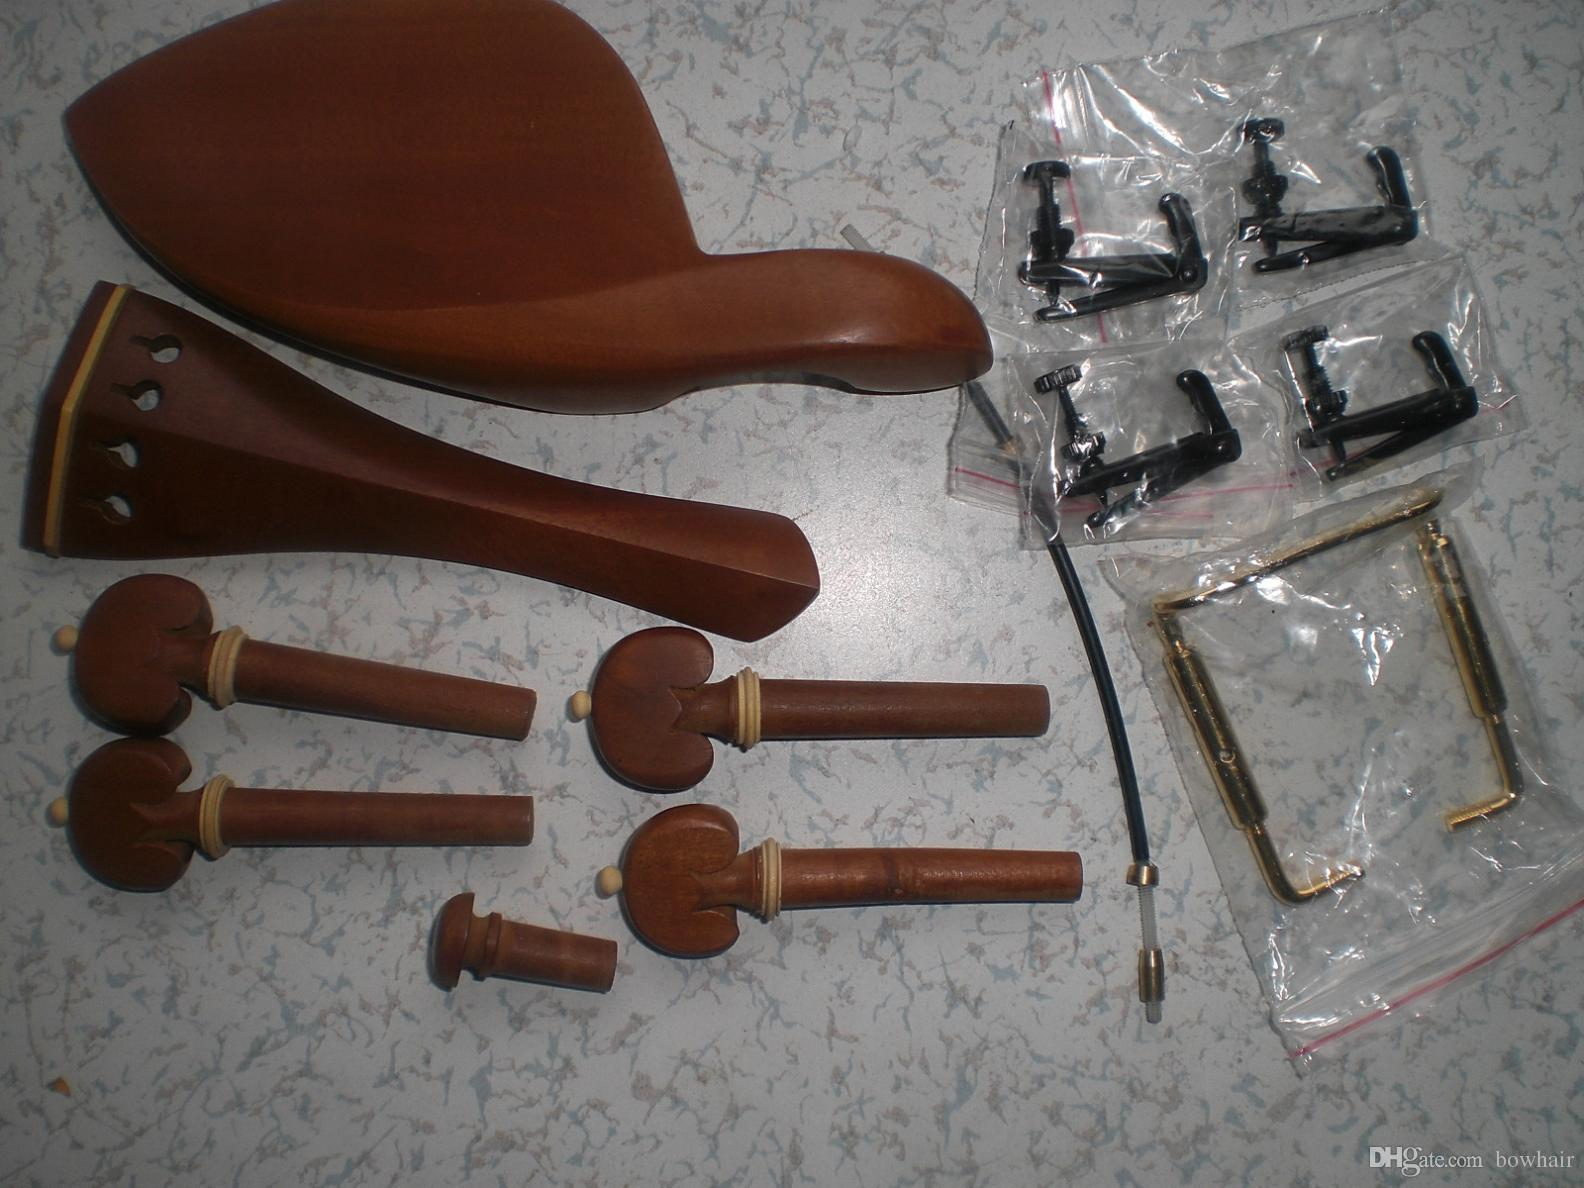 Violin Parts 4/4 including tail piece chin rest pegs and end pin with 4 black tuner+ gold color chin rest clamp and tail gut